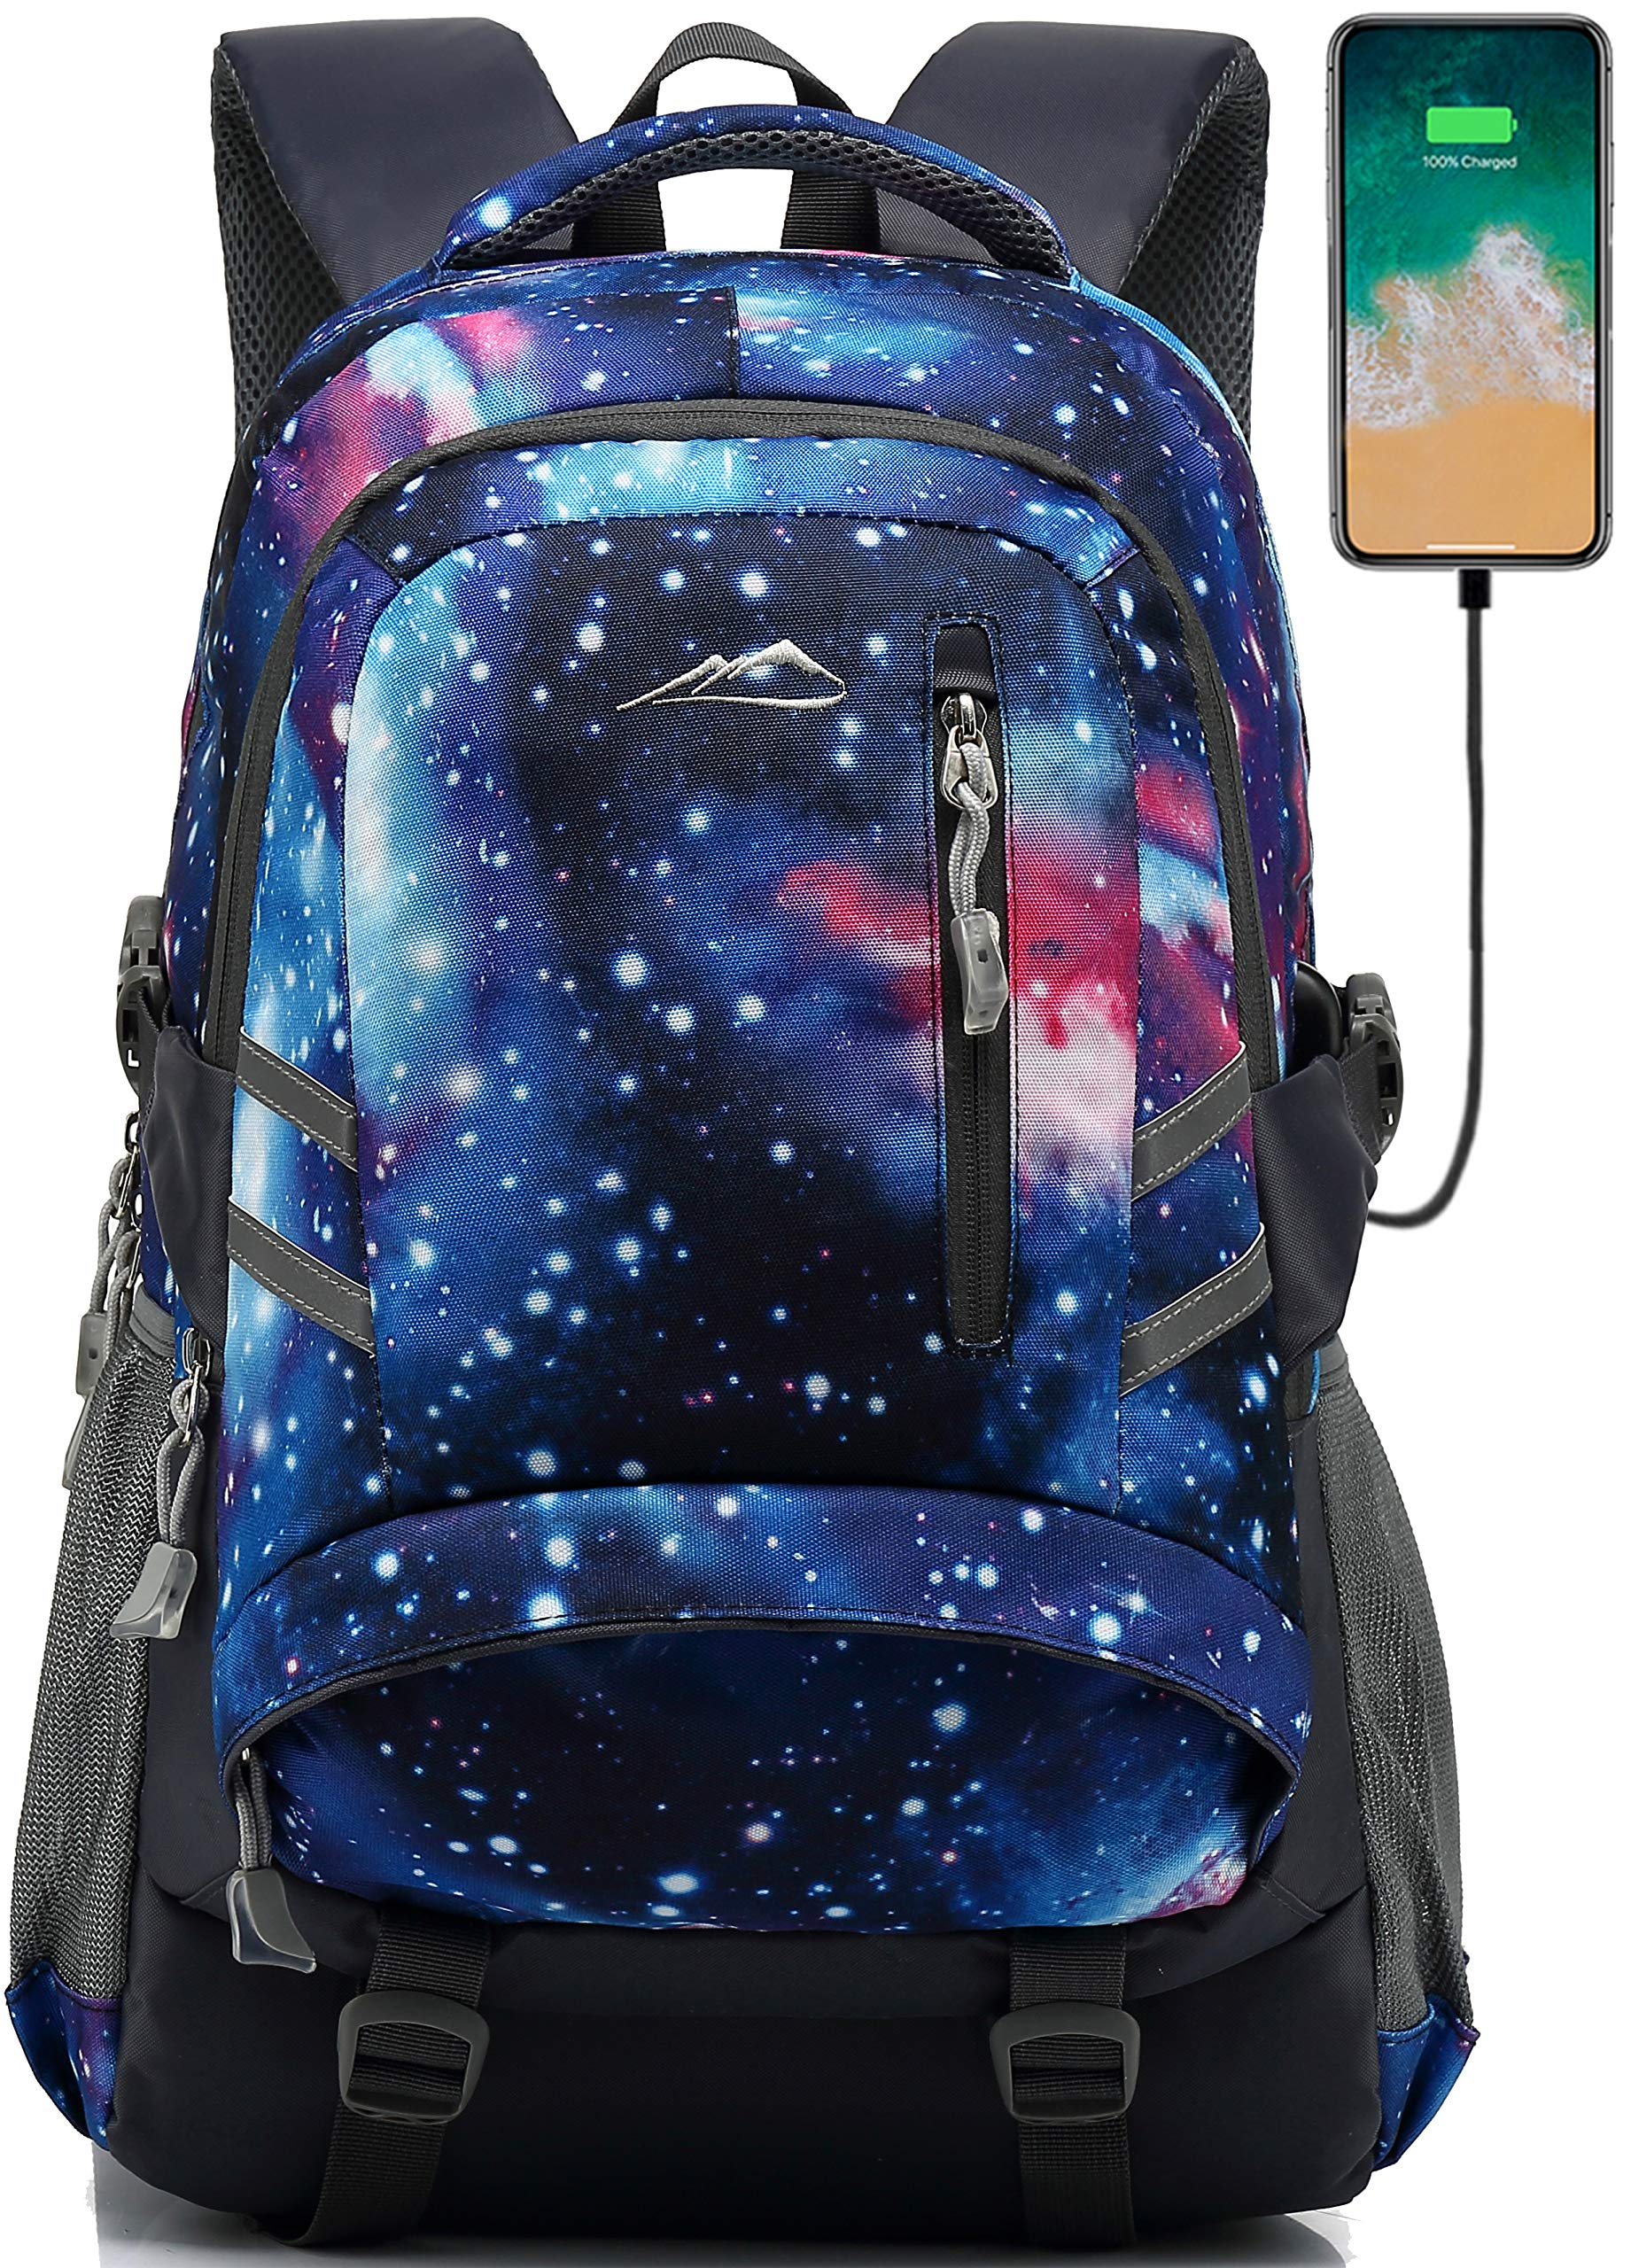 Backpack Bookbag for School Student College Business Travel with USB Charging Port Fit Laptop Up to 15.6 Inch Night Light Reflective Anti Theft (Galaxy A) by ANTSANG